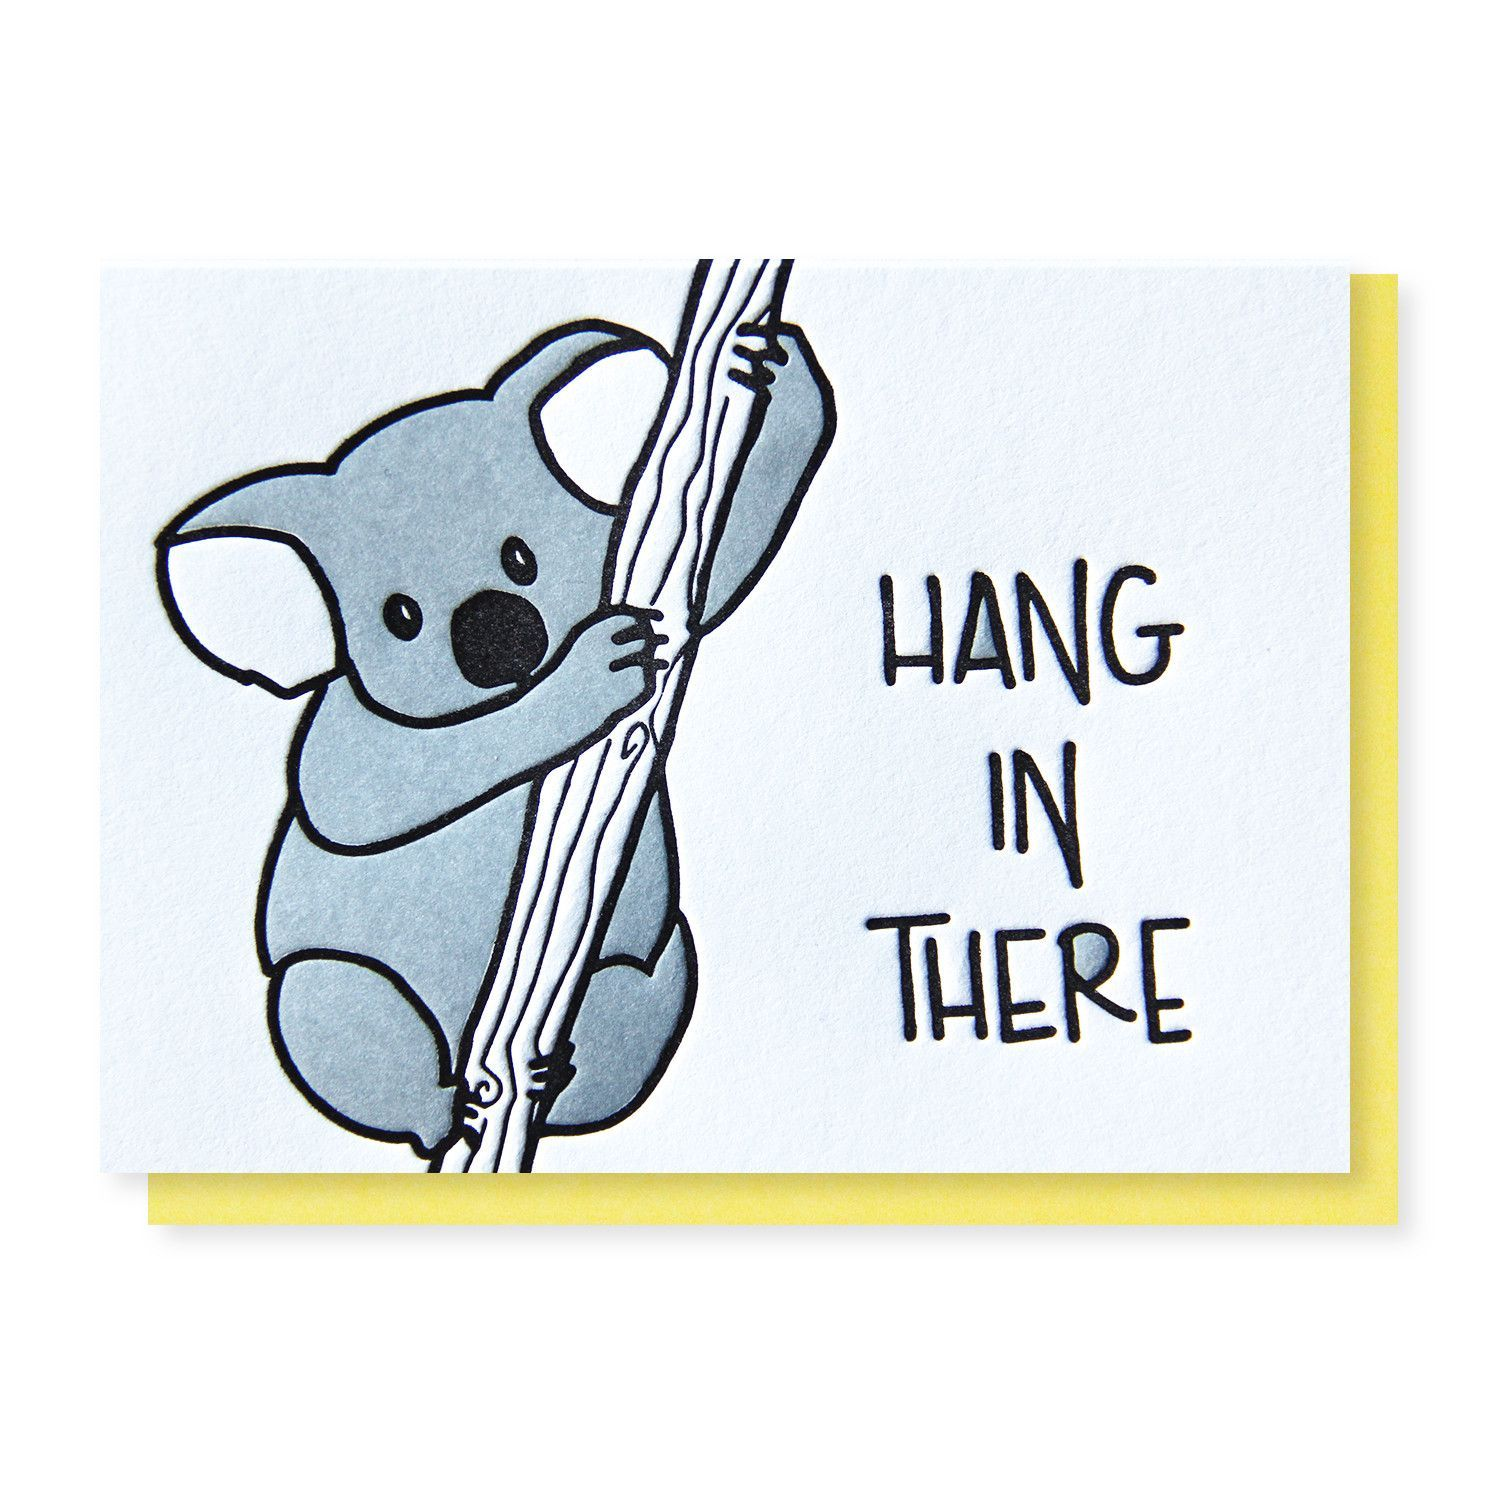 Cute And Sweet Koala Hang In There Encouragement Sympathy Letterpress Card Kiss And Punch In 2021 Letterpress Cards Punny Cards Sorry Cards